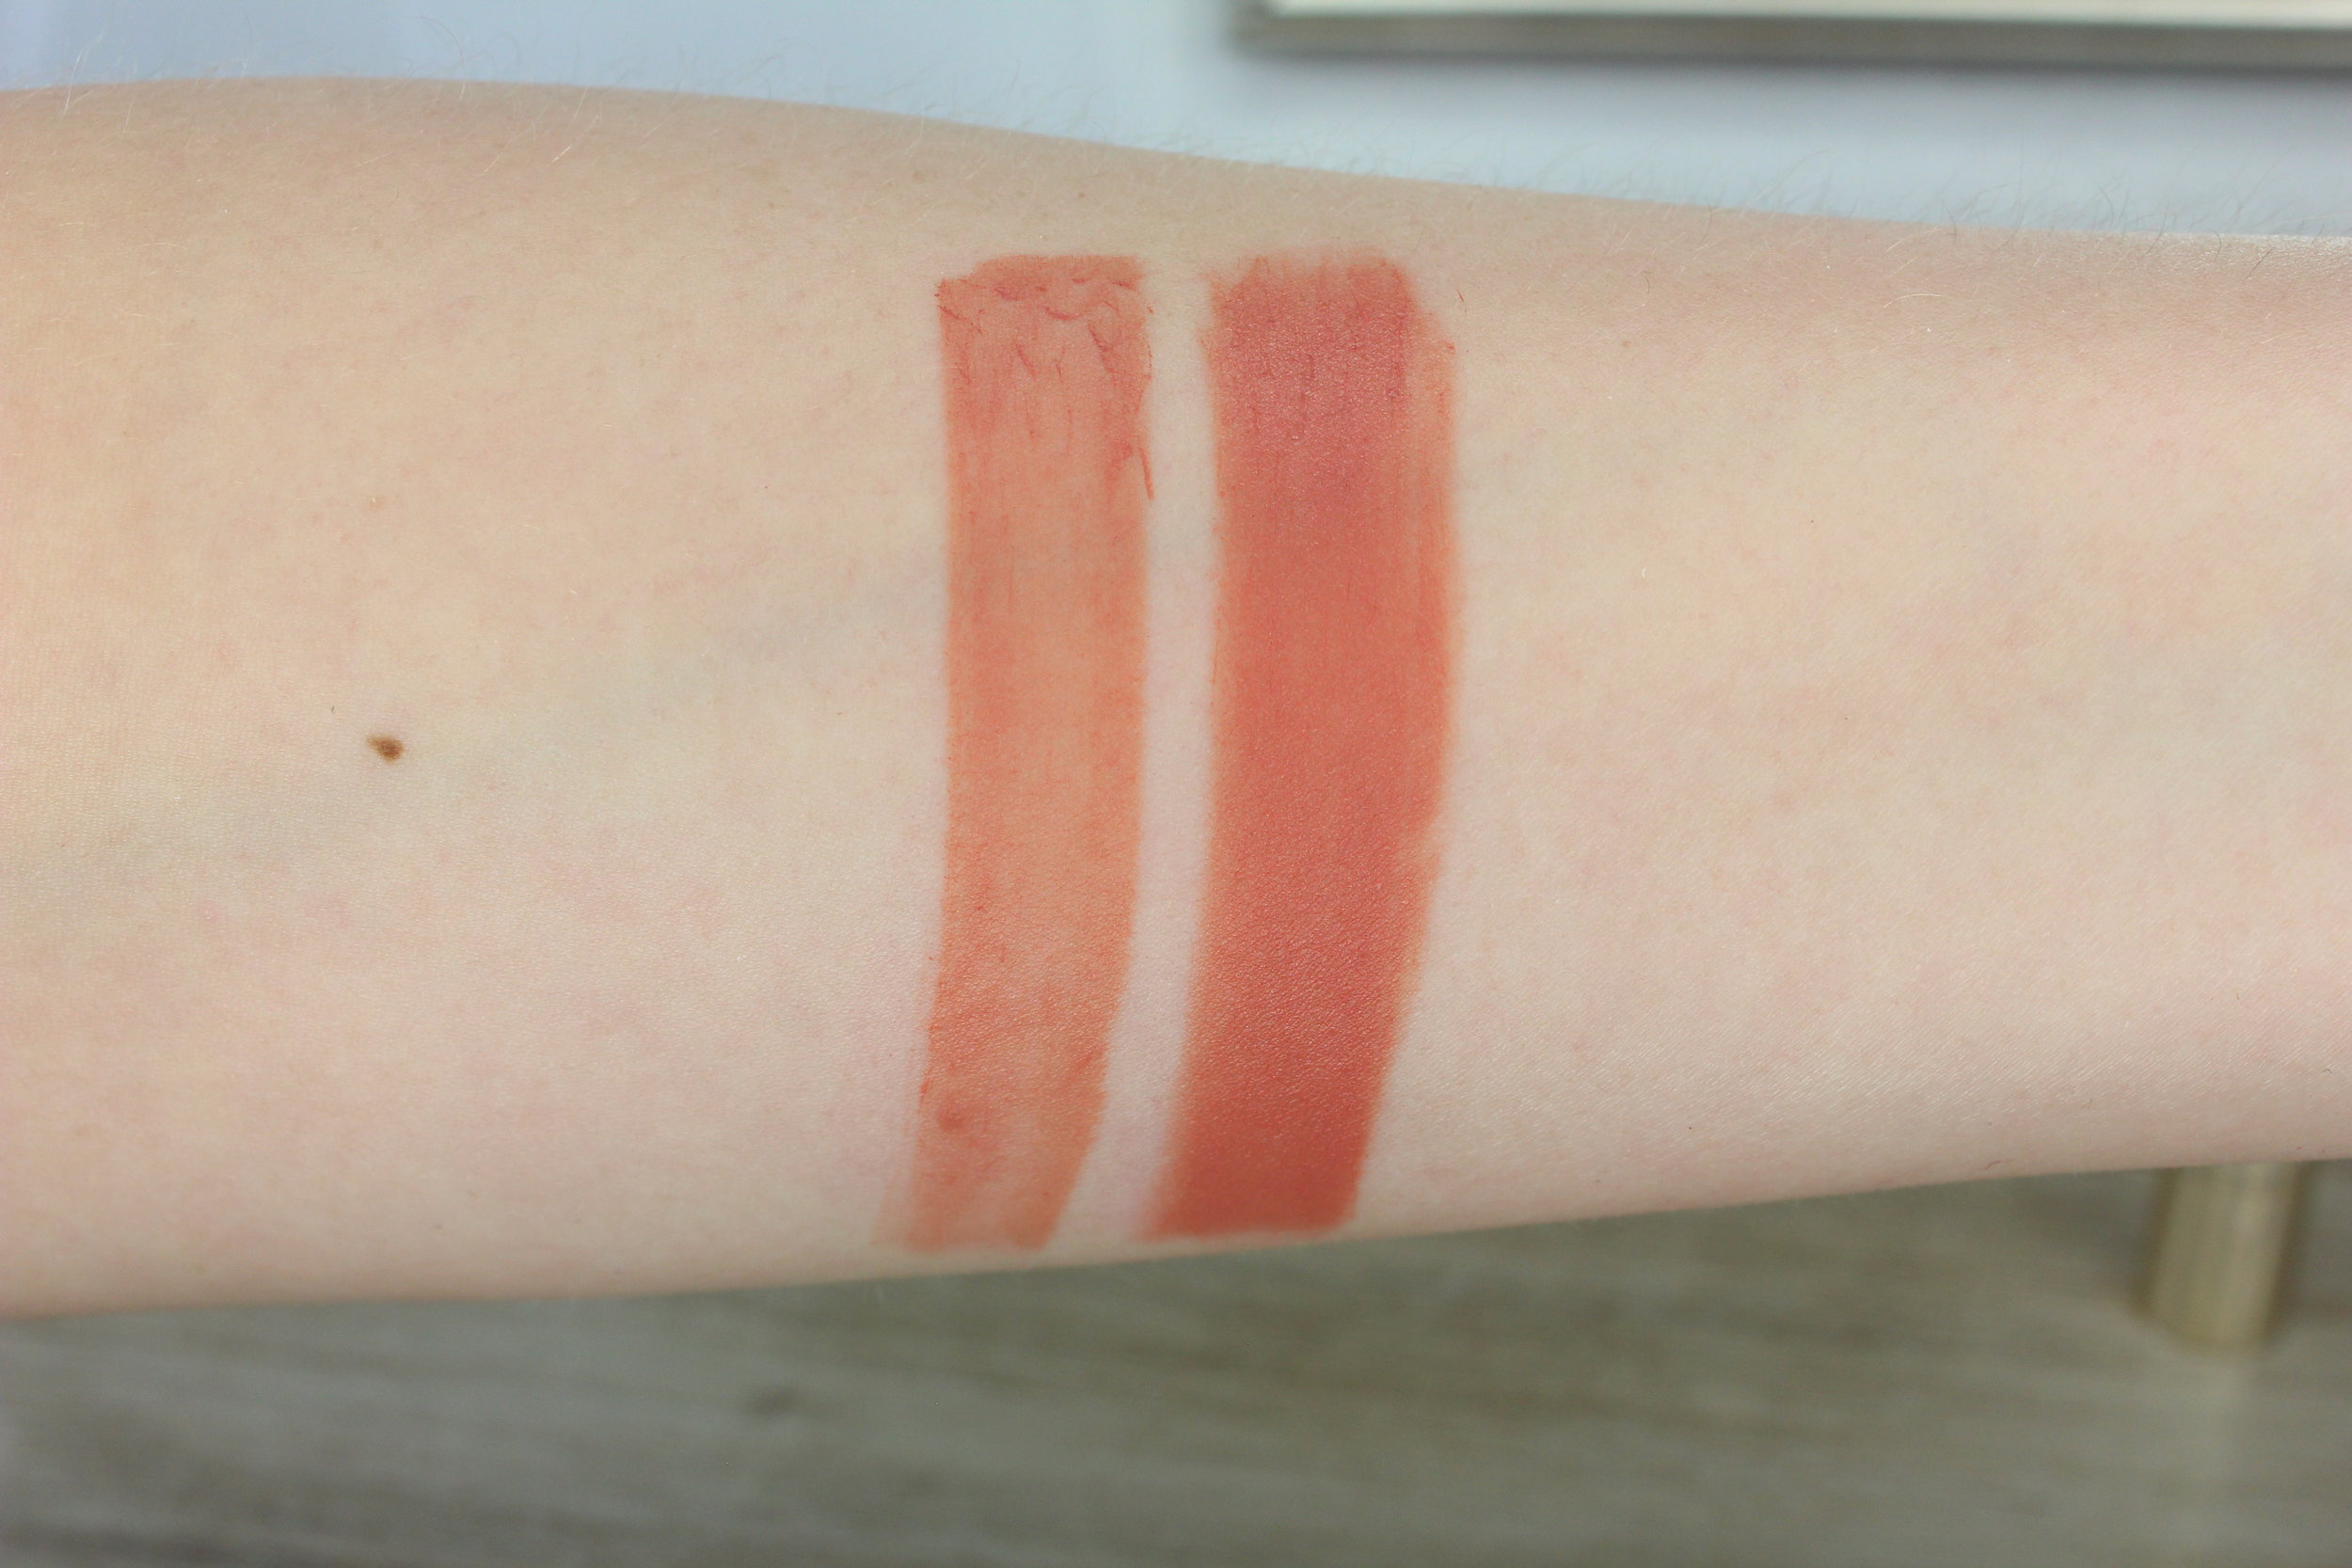 Estee Lauder Raw Sugar (110) swatch